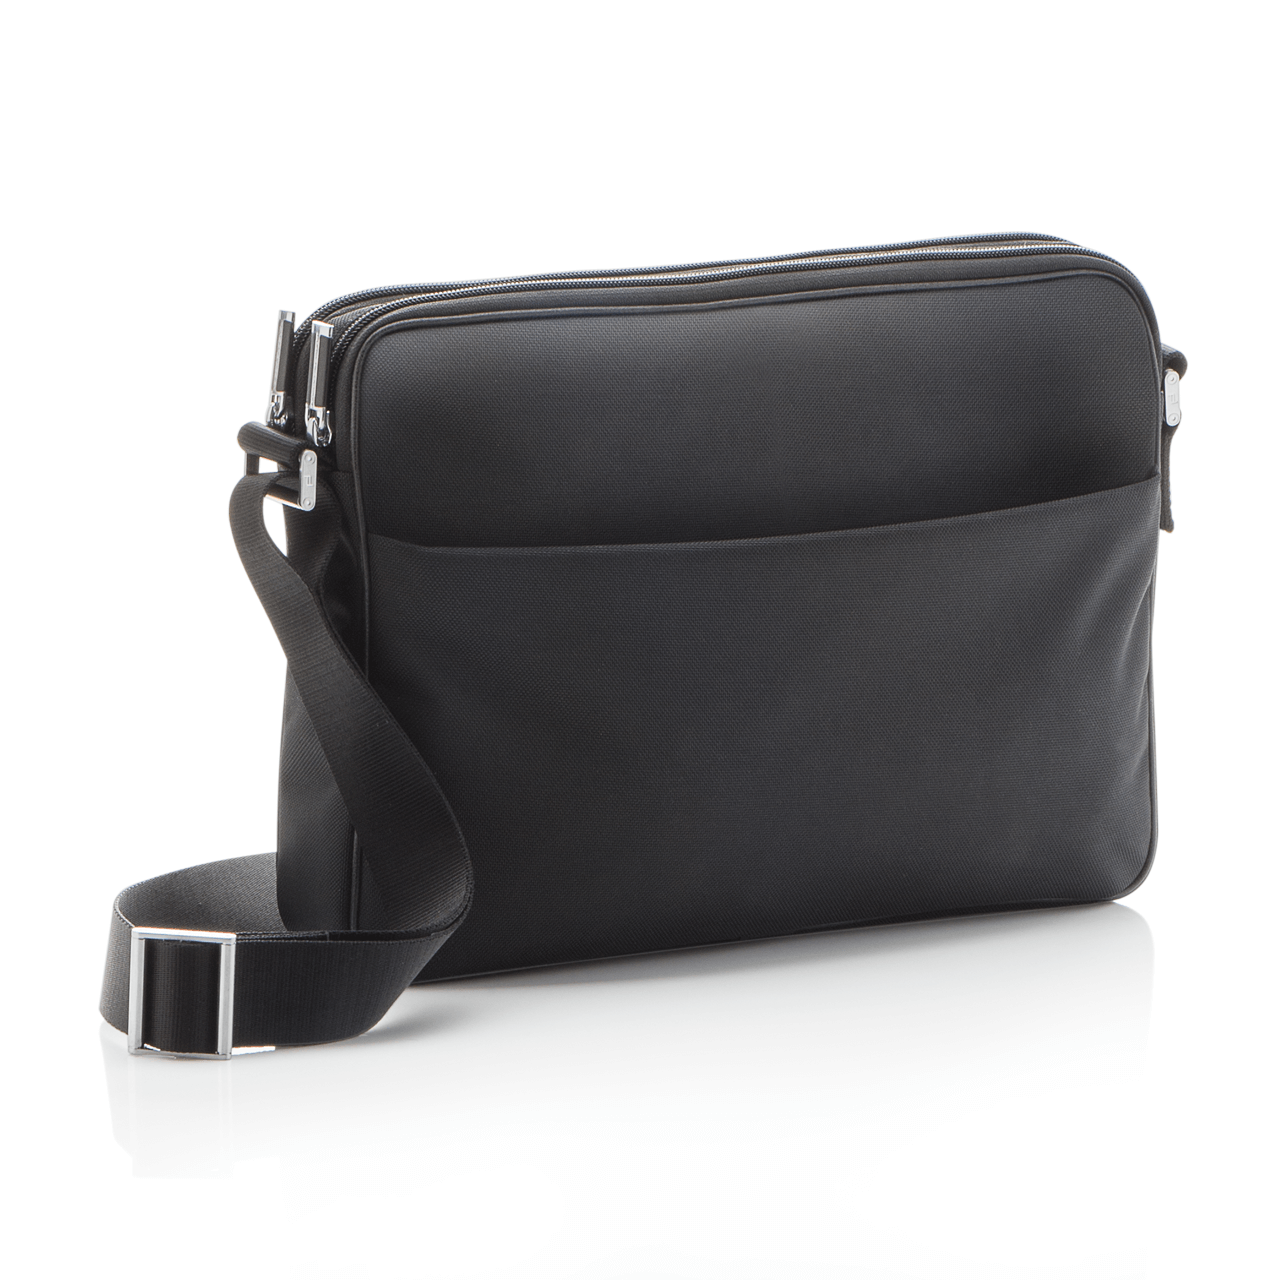 ROADSTER SOFTCASE SERIES SHOULDERBAG MH - фото 1